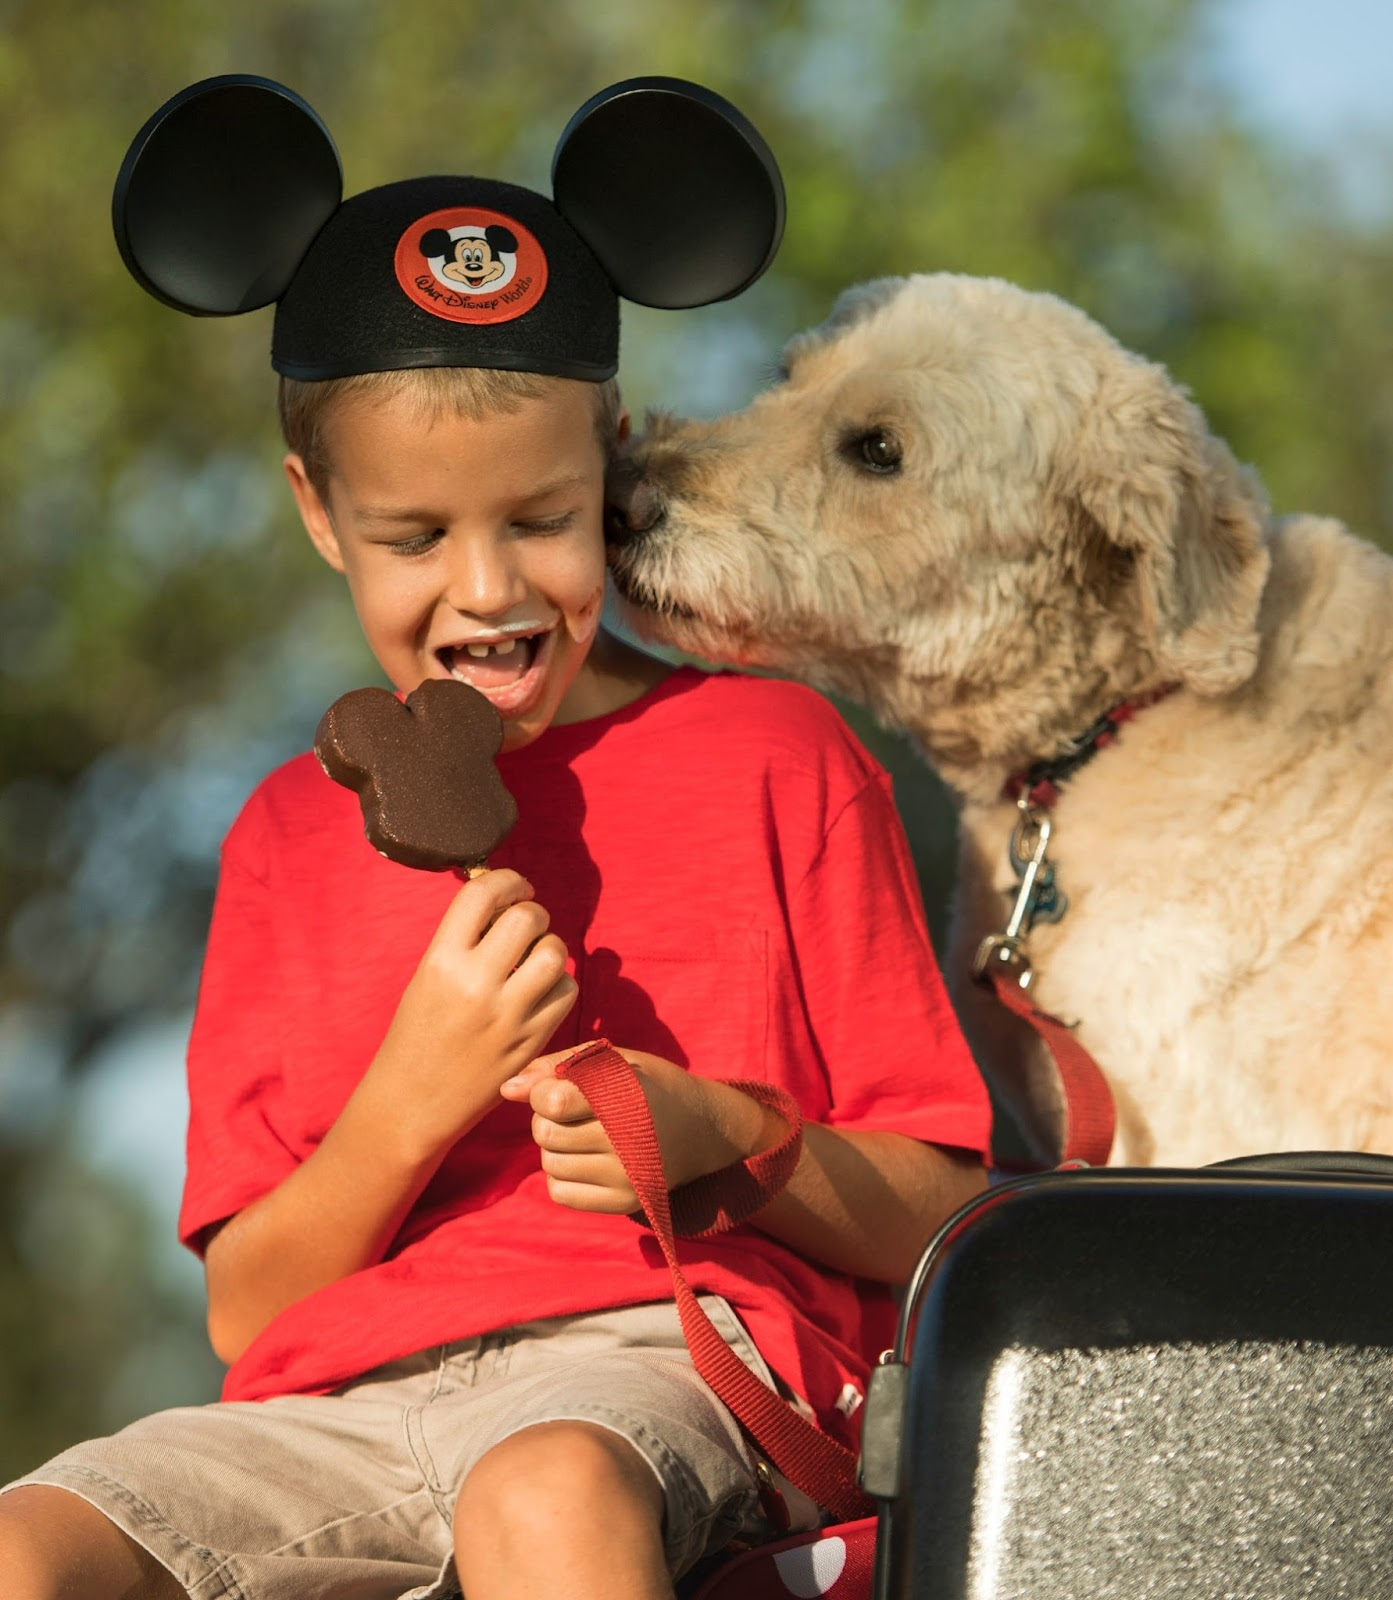 Select Walt Disney World Hotels Welcomes Guests and Their Dogs